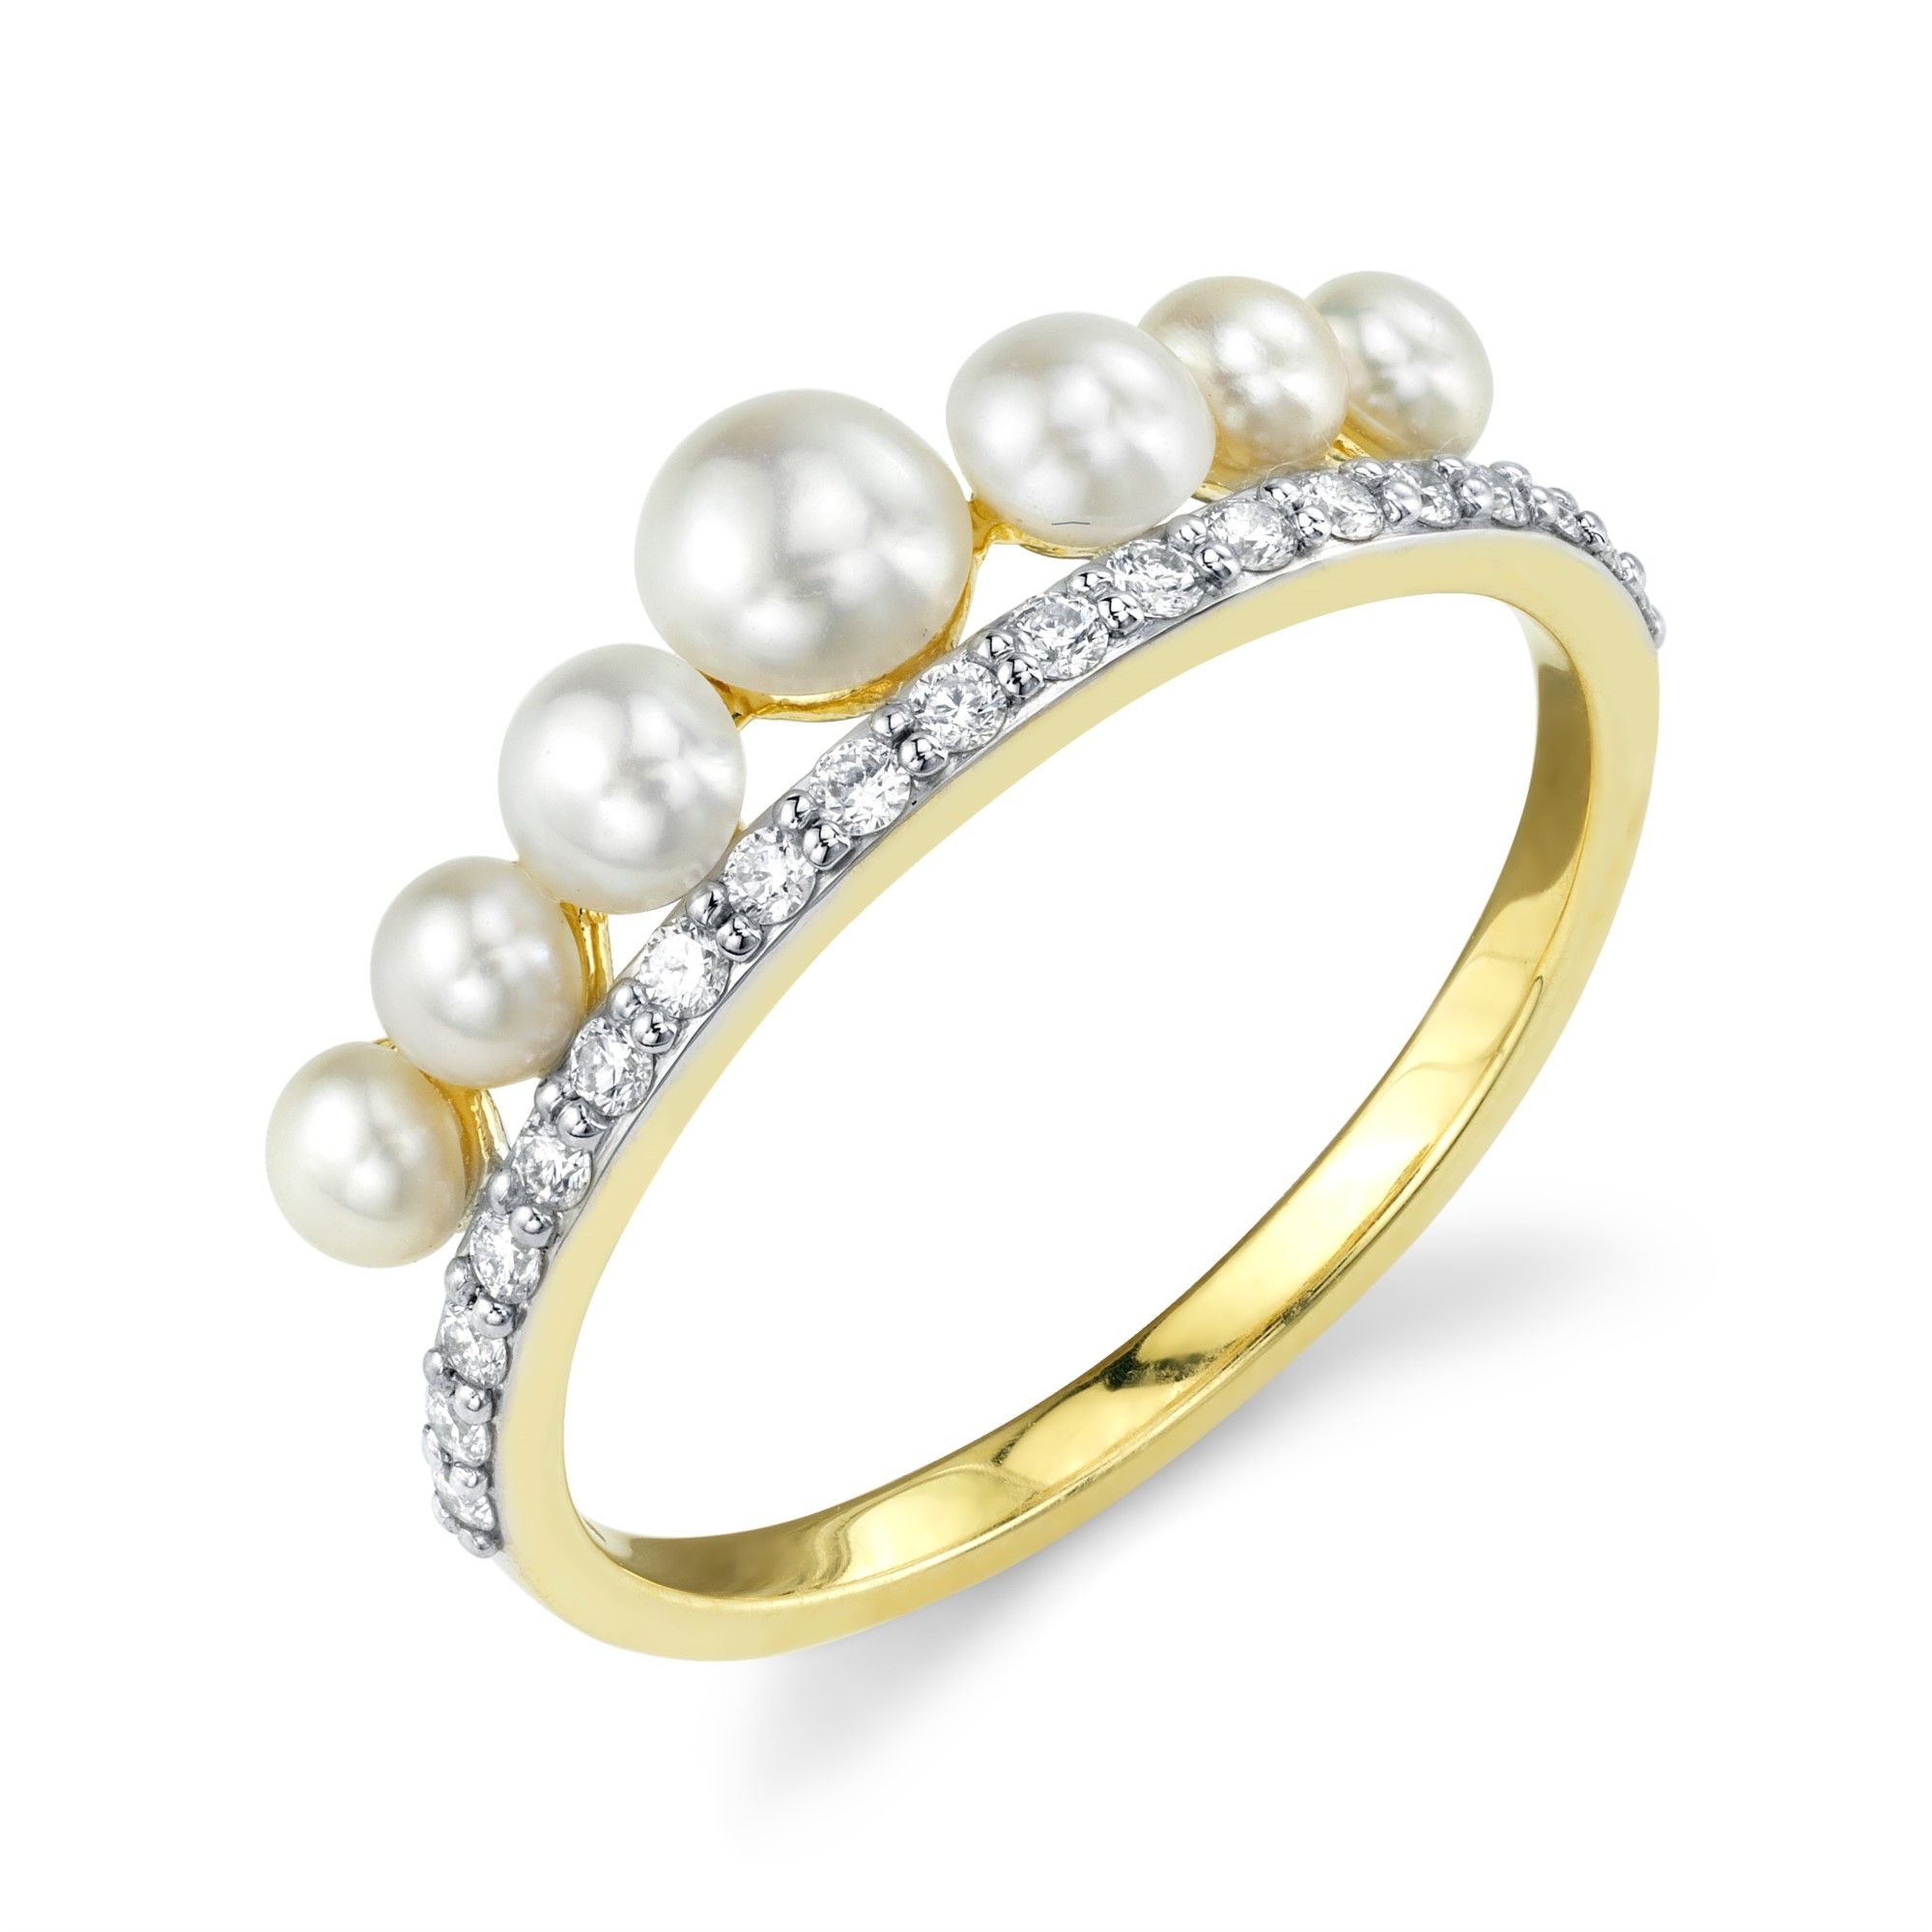 Sloane Street 18K Yellow Gold .38cts  Diamonds Gold Ring with Stones R005F-WP-WDCB-Y